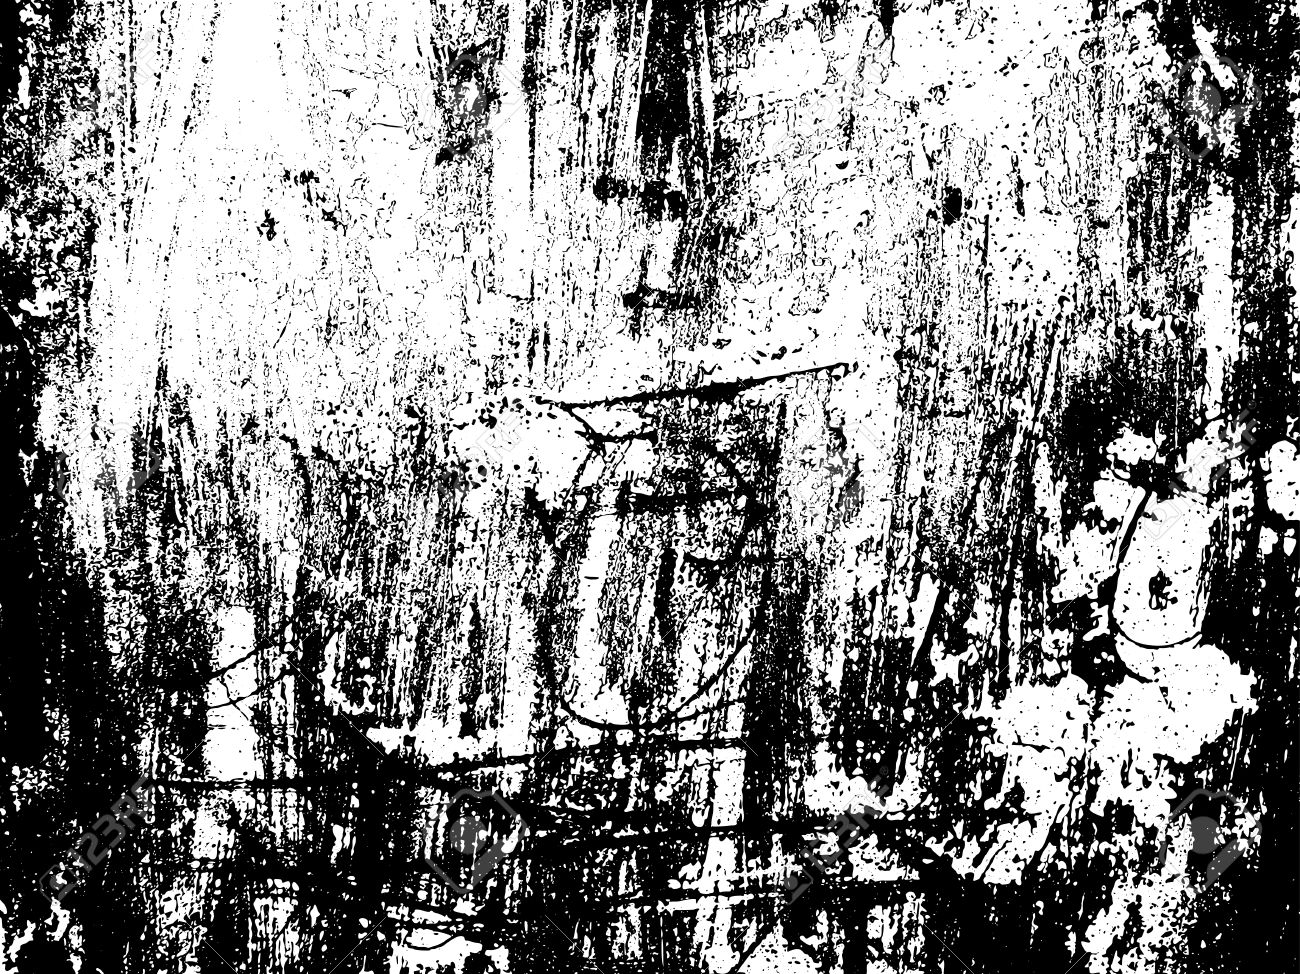 Scratched Texture Overlay. Distressed Texture. Black And White.